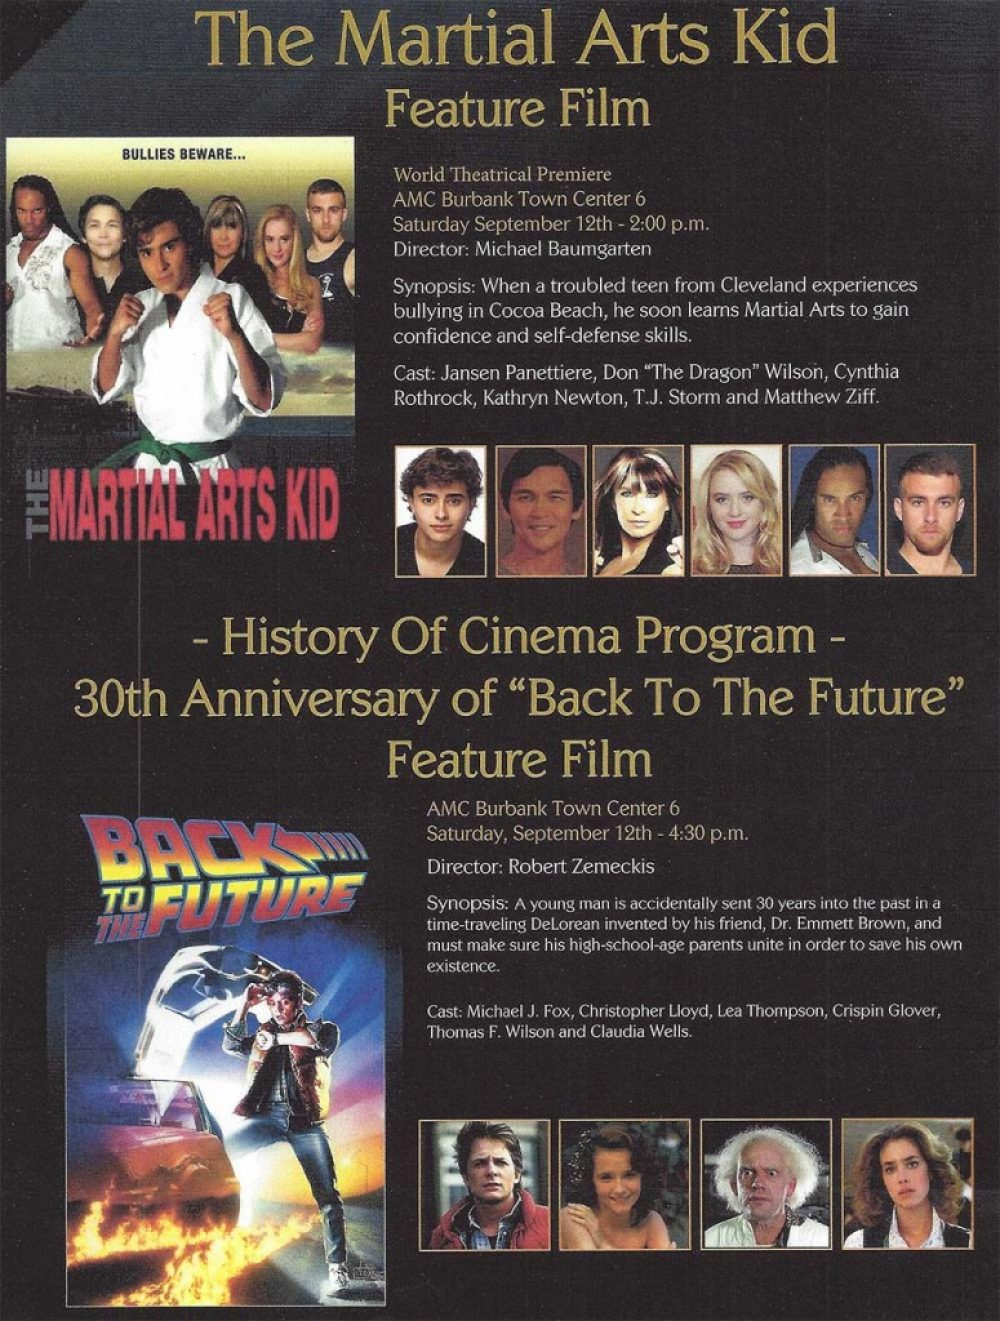 The Martial Arts Kid Premiere Program